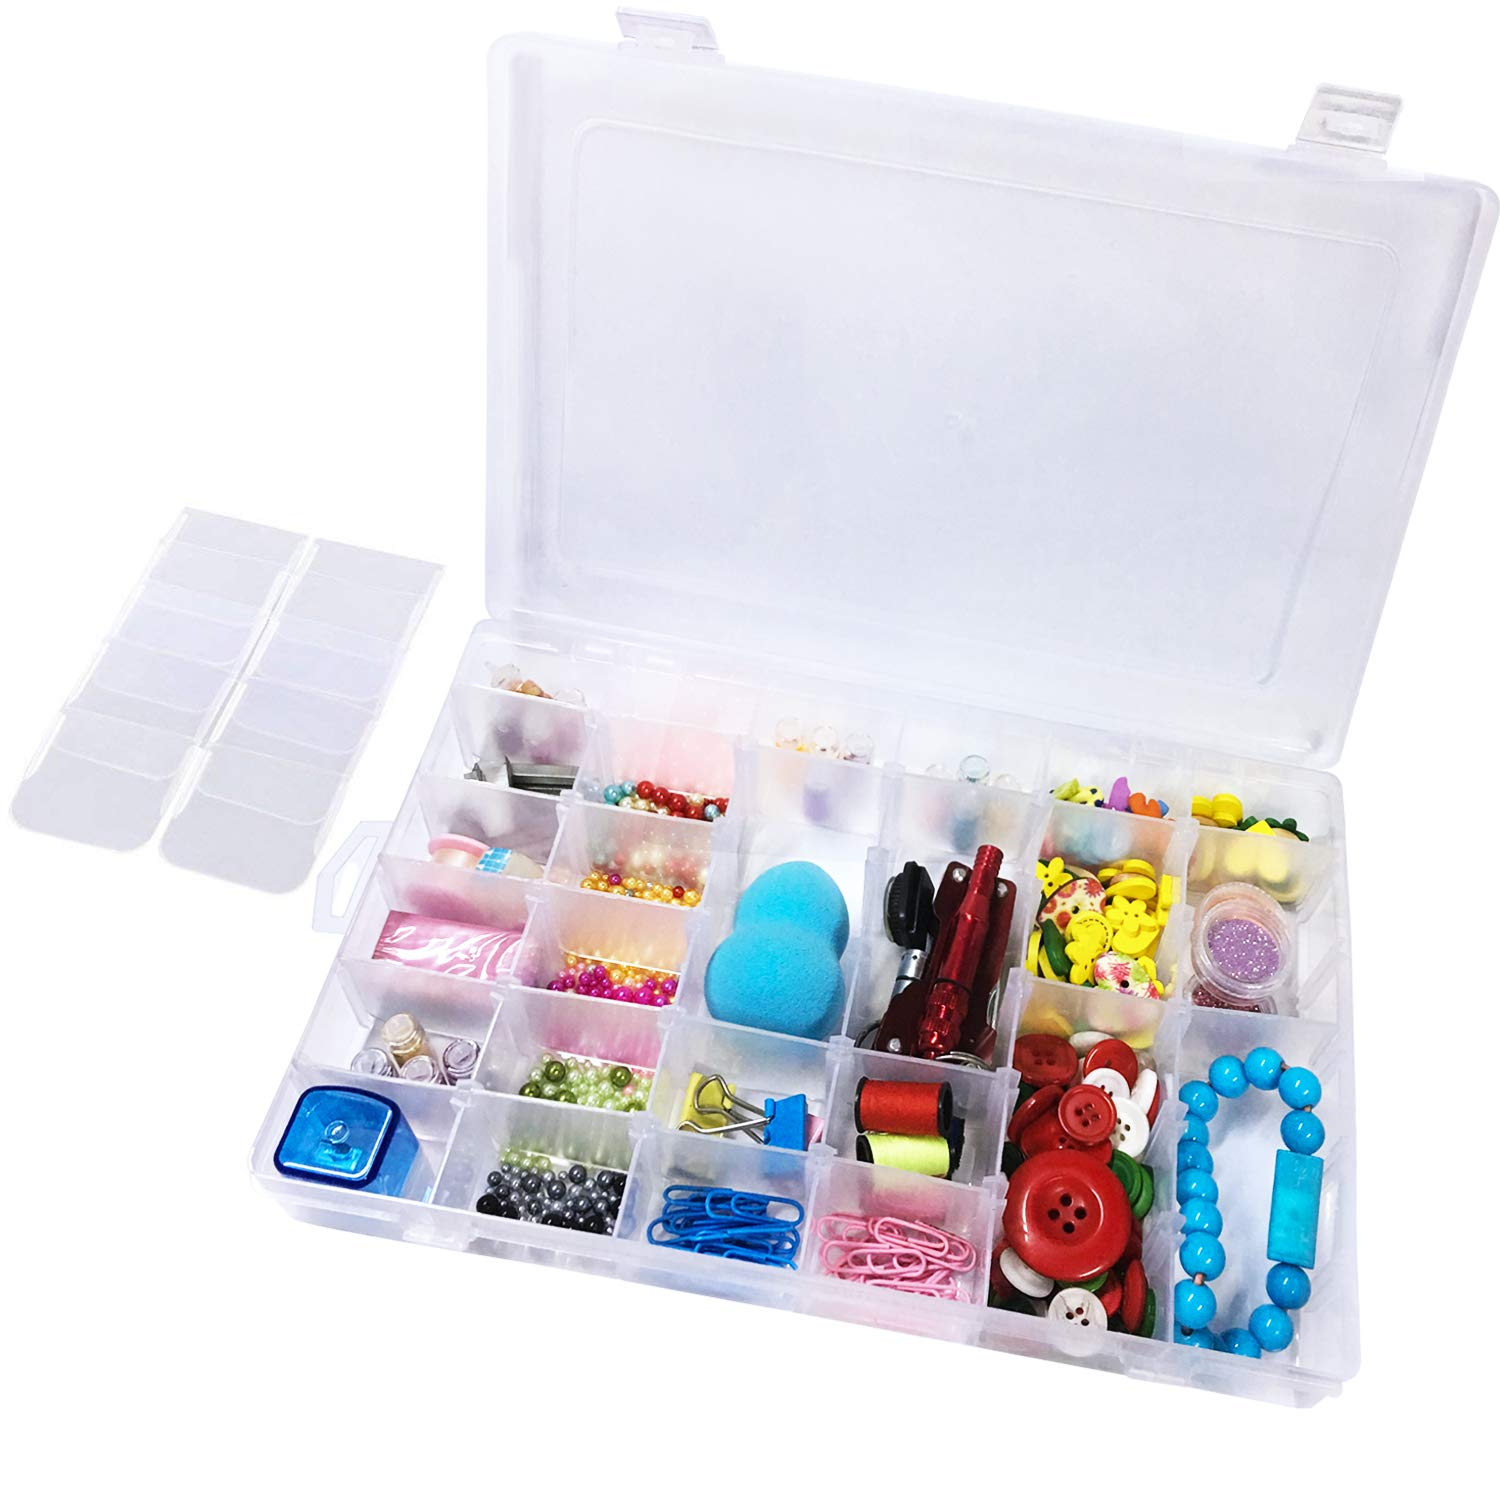 36 Grids Plastic Jewelry Box Earring Organizer Storage Containers with Movable Dividers for Beads Jewelry Small Parts Things Sold by Lasten Lasten-US 4336840032